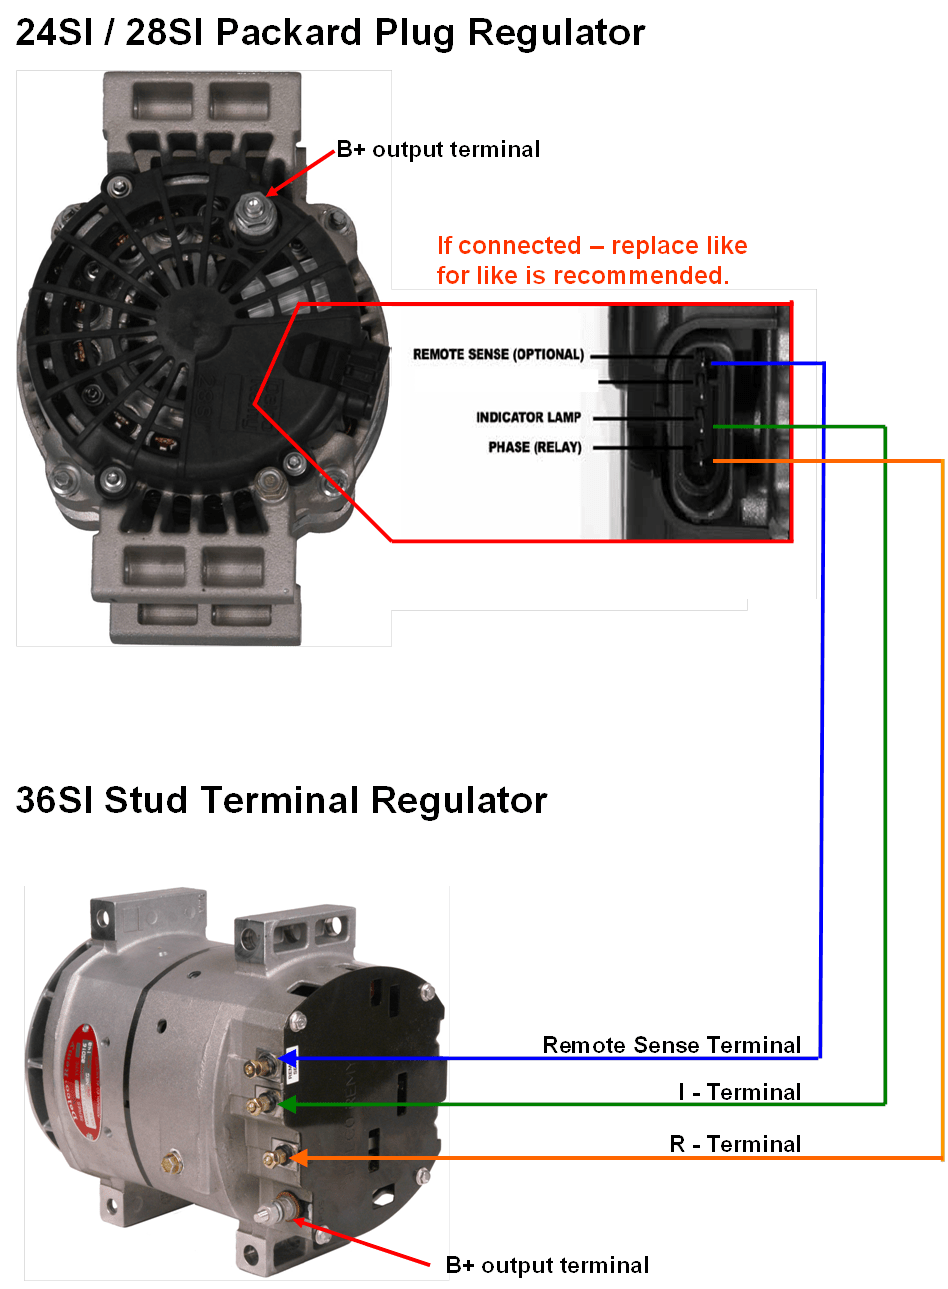 medium resolution of if the original model plug regulator is not in use therefore not connected with an oem harness the model can be replaced by this proposed replacement part